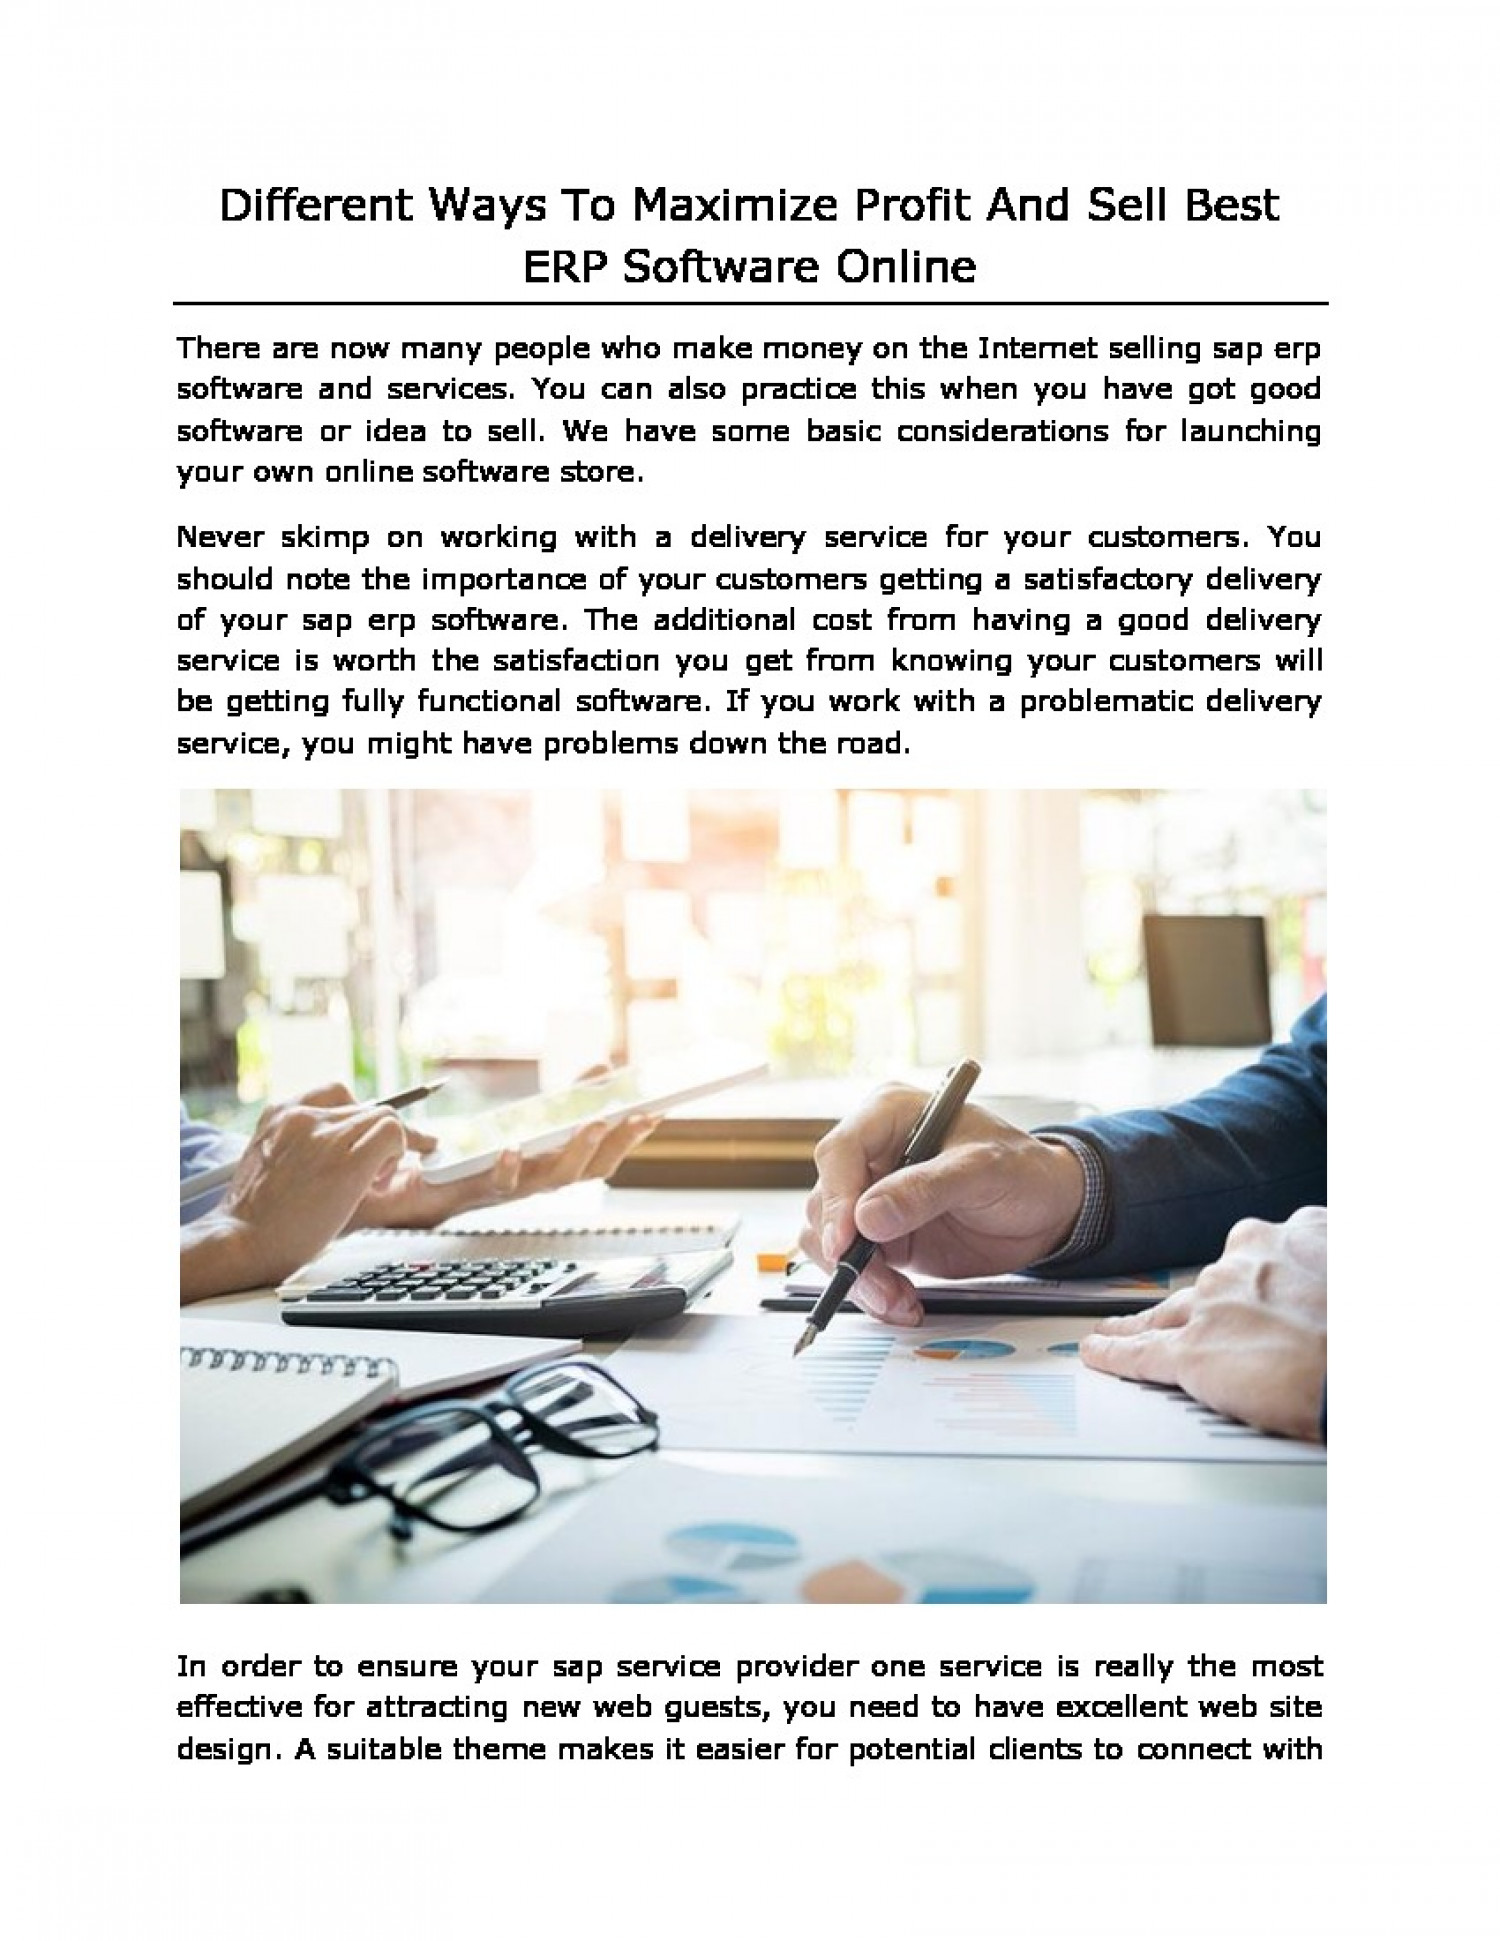 Different Ways To Maximize Profit And Sell Best ERP Software Online Infographic